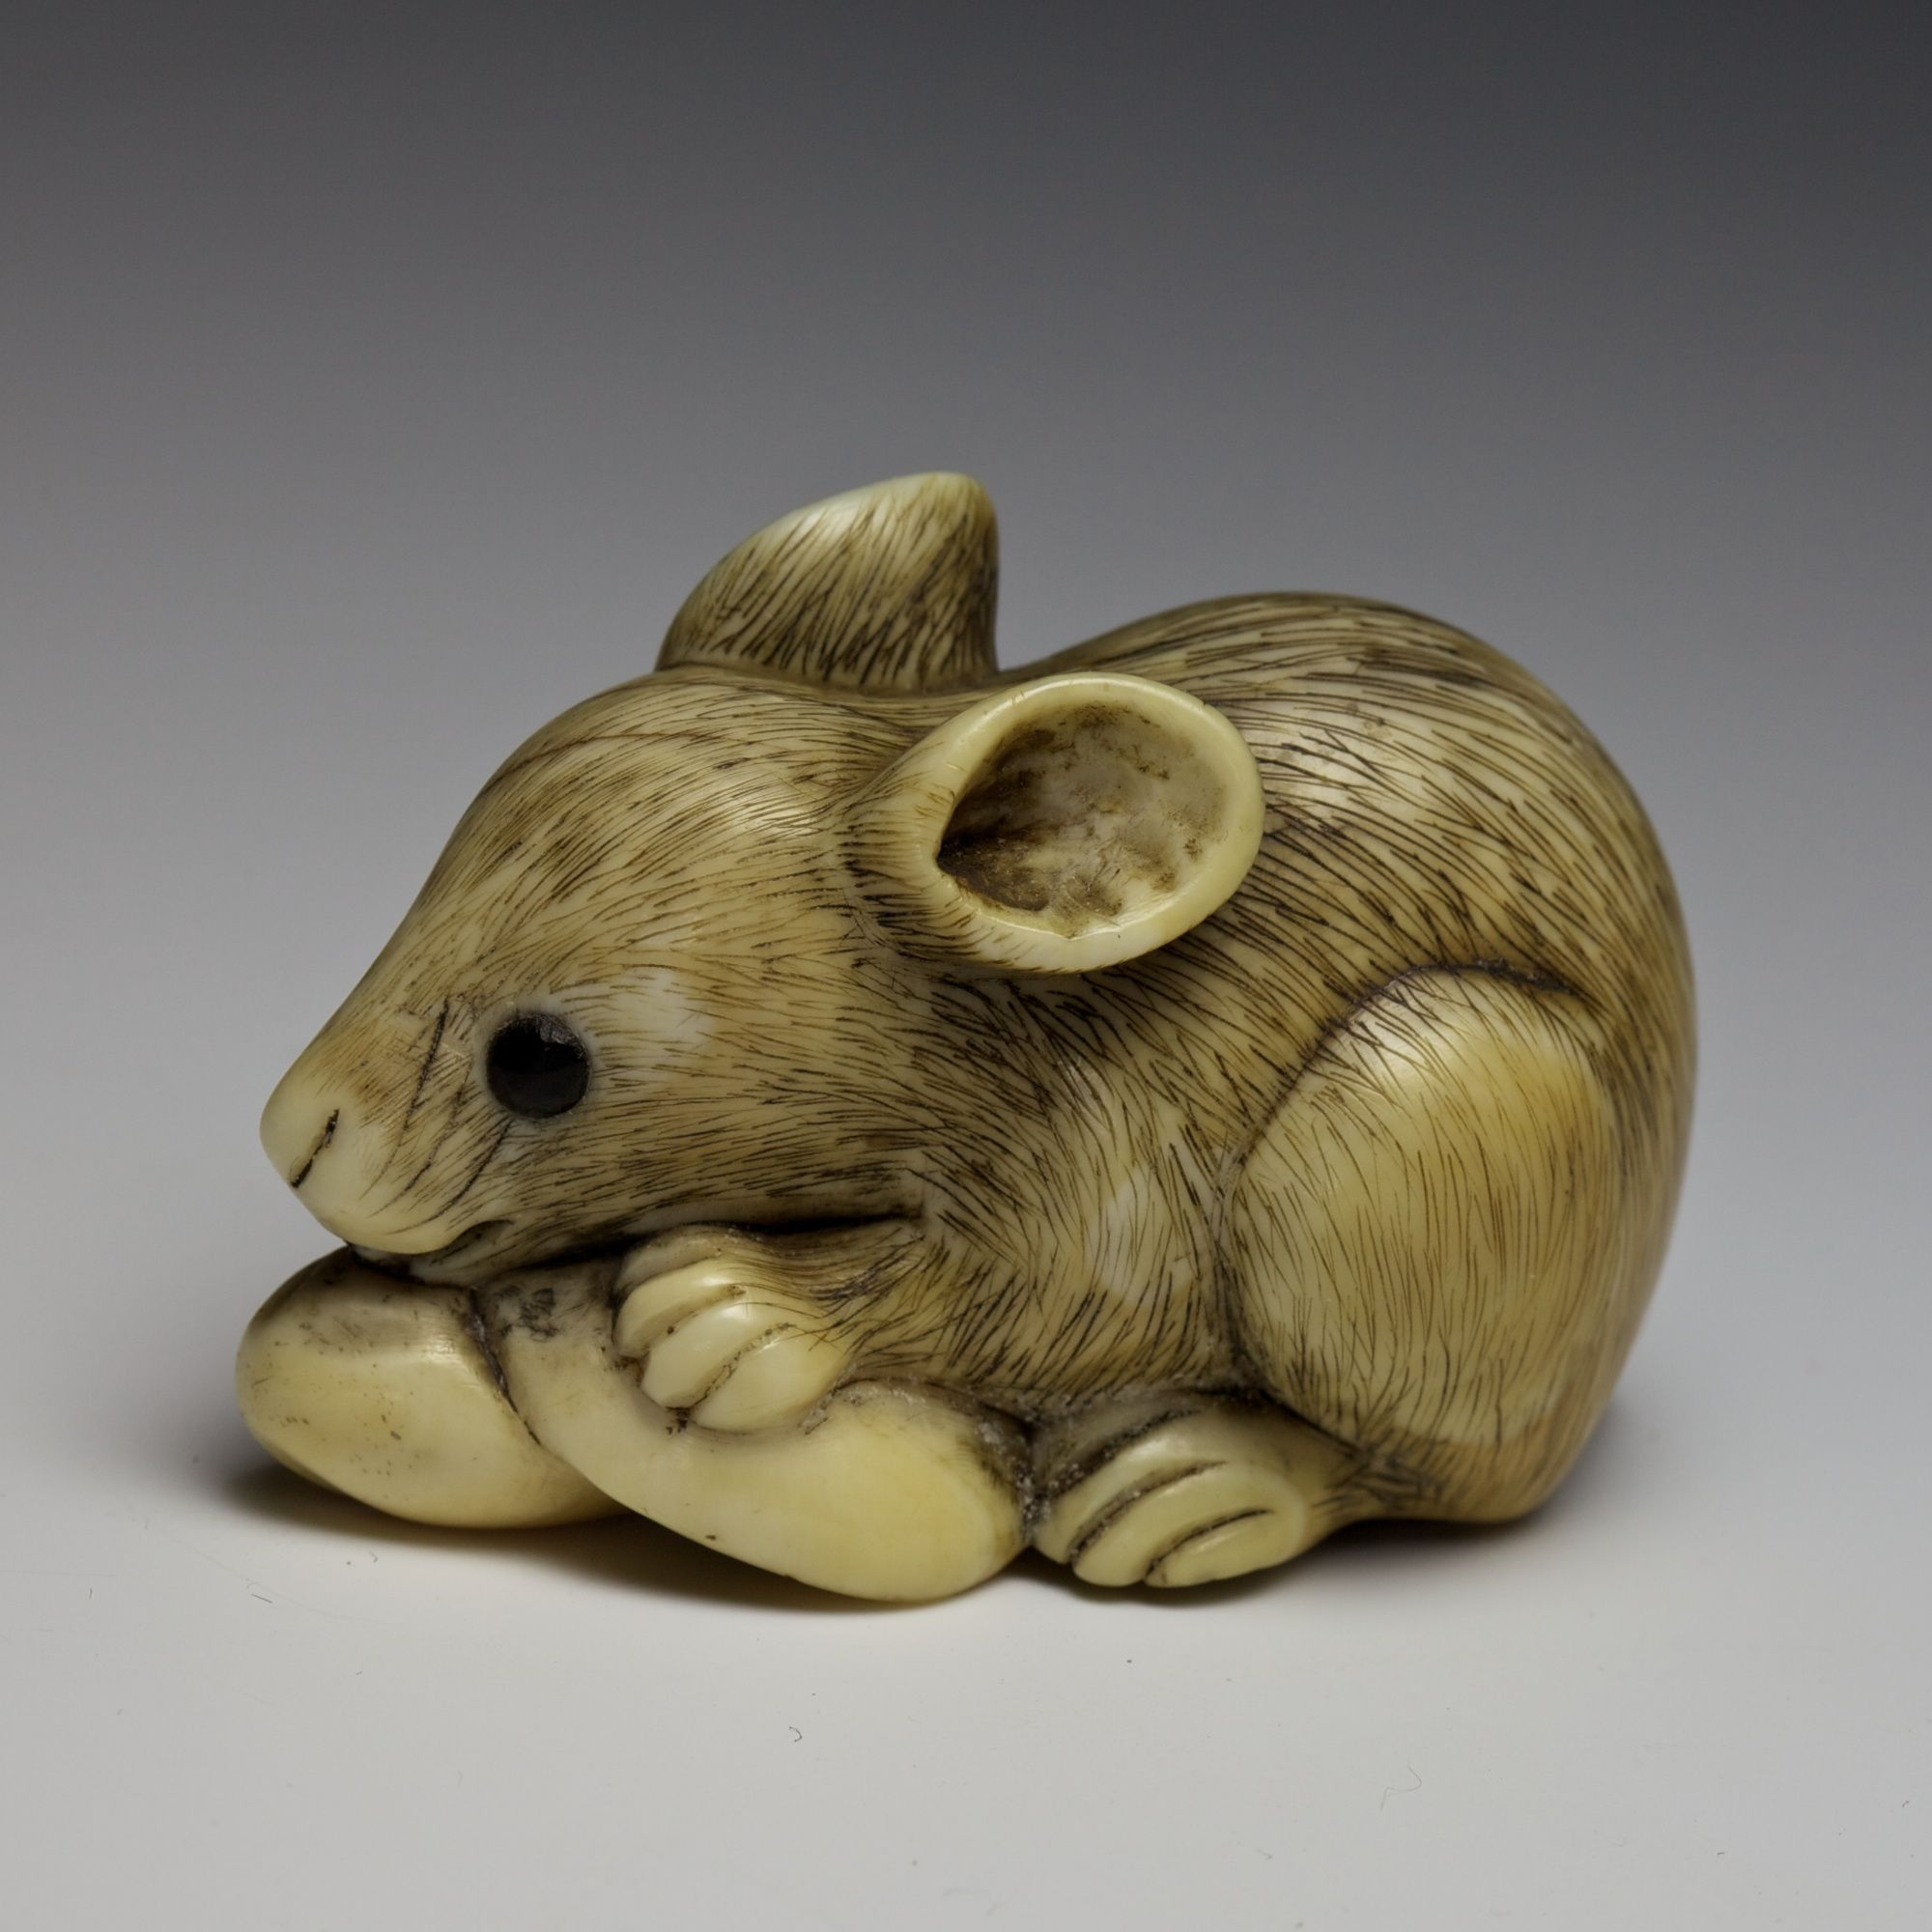 Rat with mushroom Kyoto school, early 19th Century  Ivory netsuke; eyes inlaid in black horn Length: 4.5 cm  An early 19th Century large ivory netsuke of a crouched rat holding a mushroom in its paws with the tail next to the body. The netsuke is larger than usual and shows a nice compact structure with a well-patinated ivory.